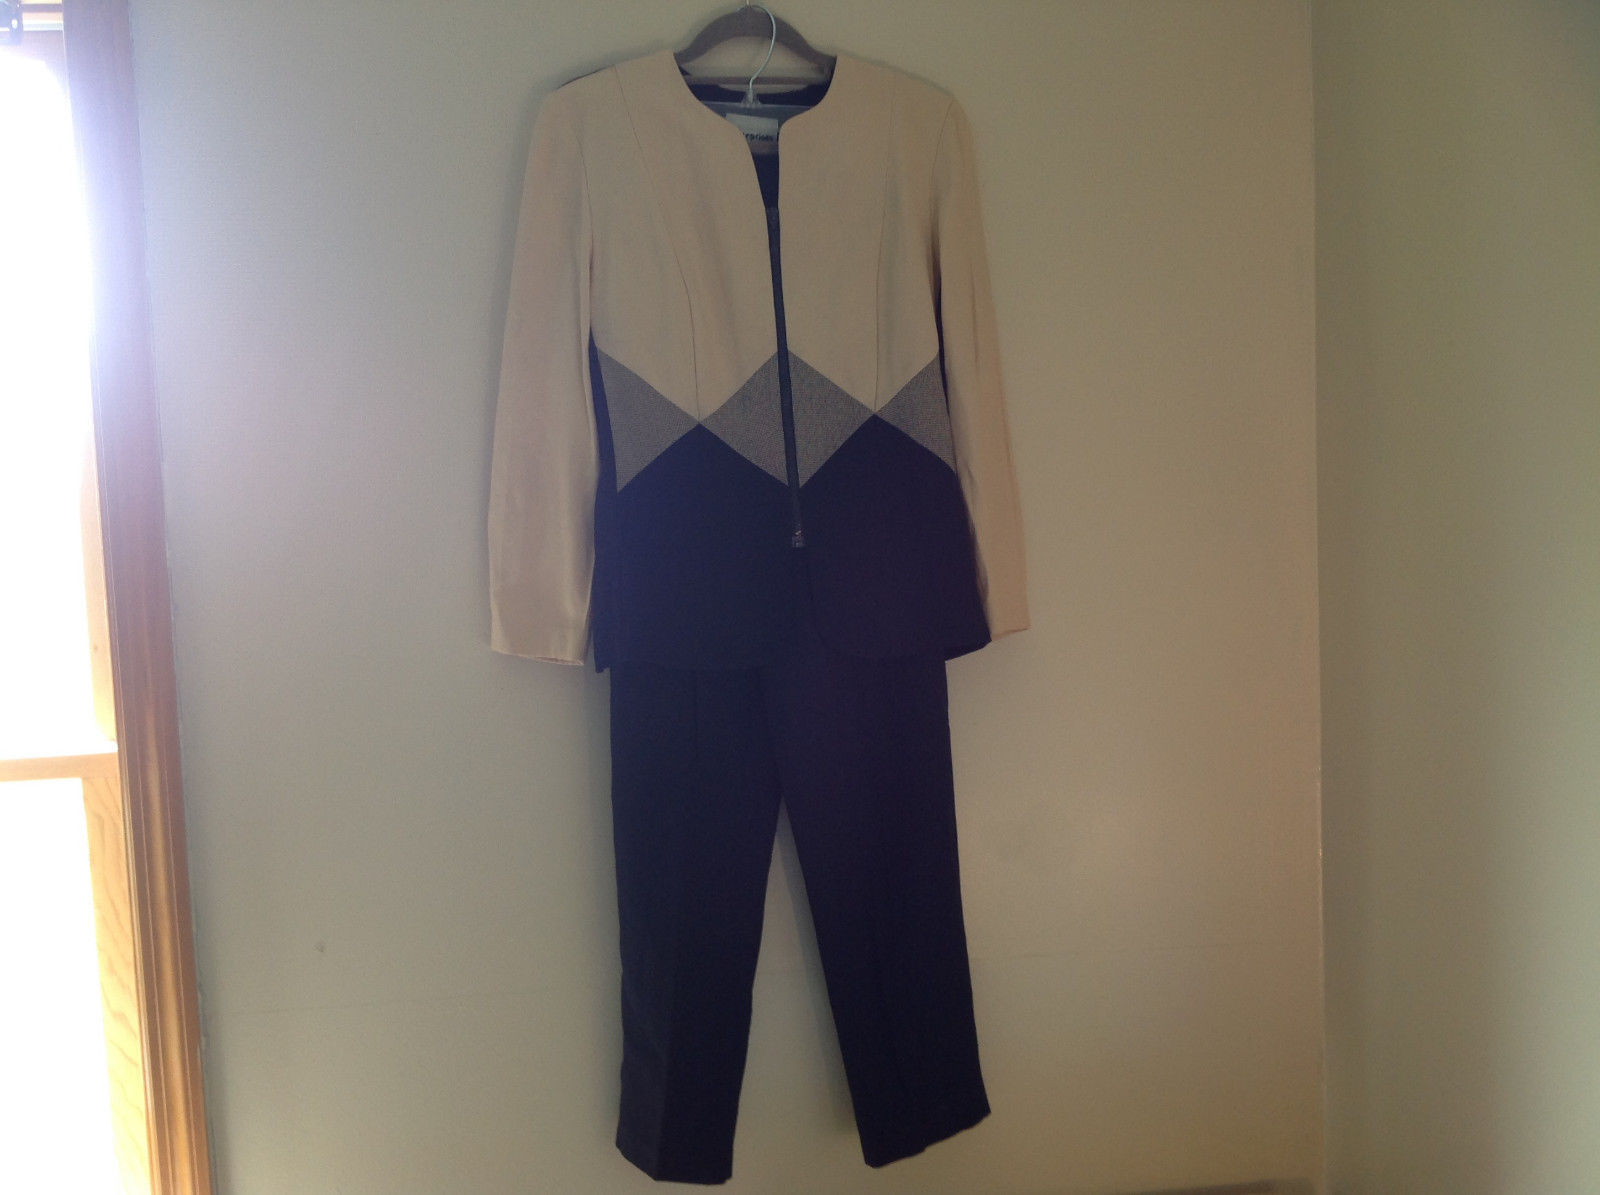 Stunning Navy Creme Pant Suit by Perceptions Elastic Waistband Size 6